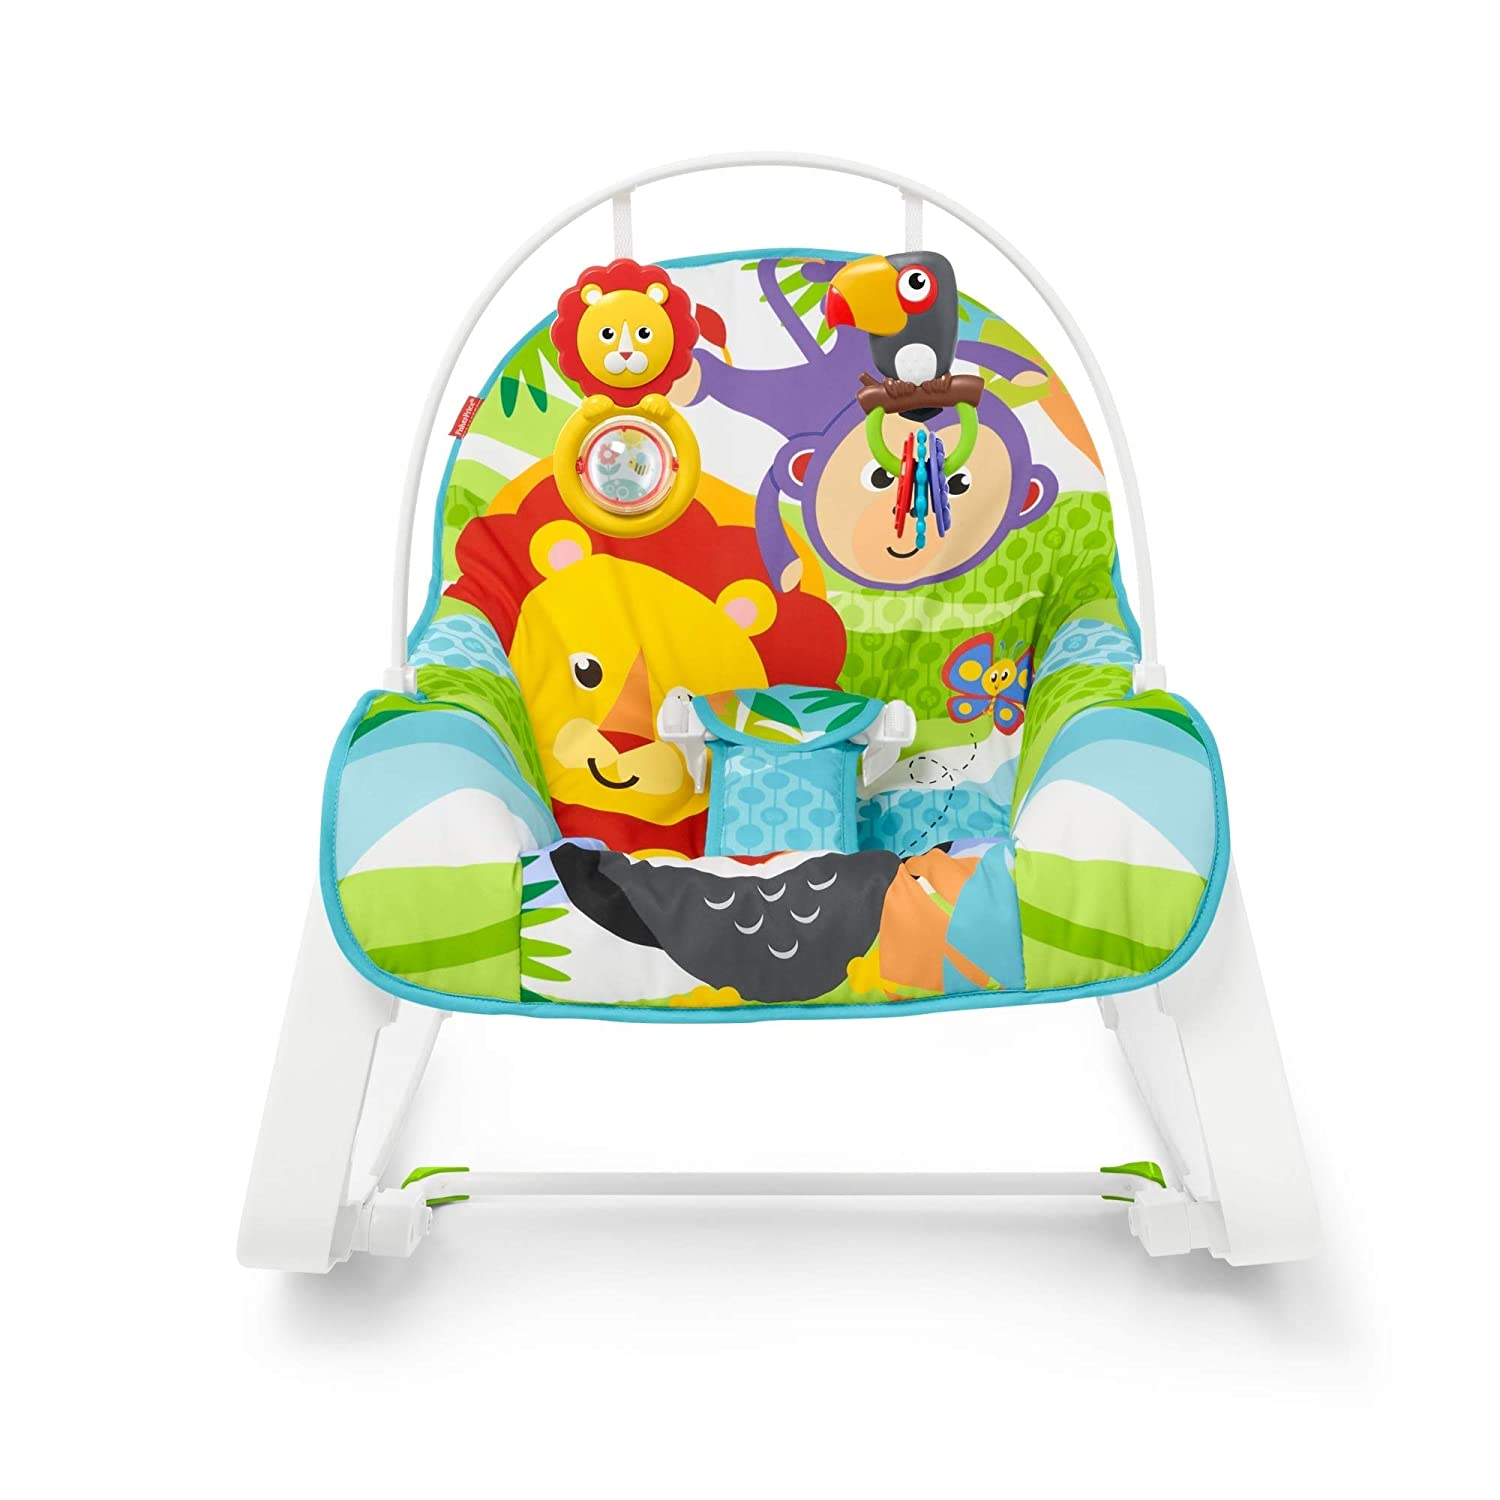 Infant-To-Toddler Rocker, Green Jungle with Removable Bar